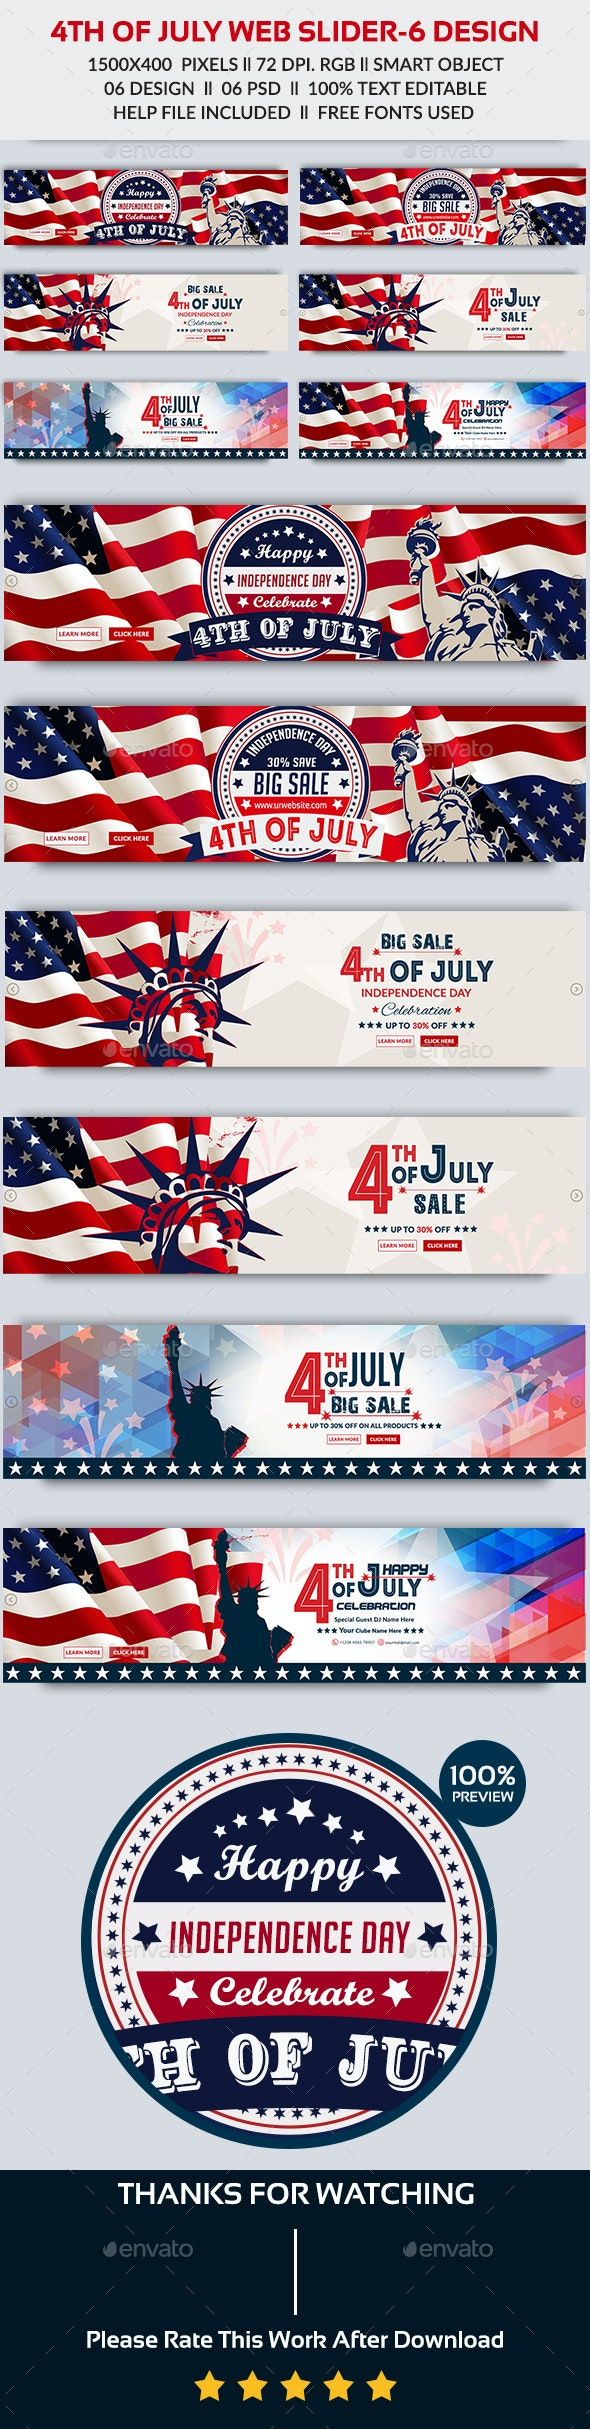 4th of July Web Slider-Bundle - Sliders & Features Web Elements